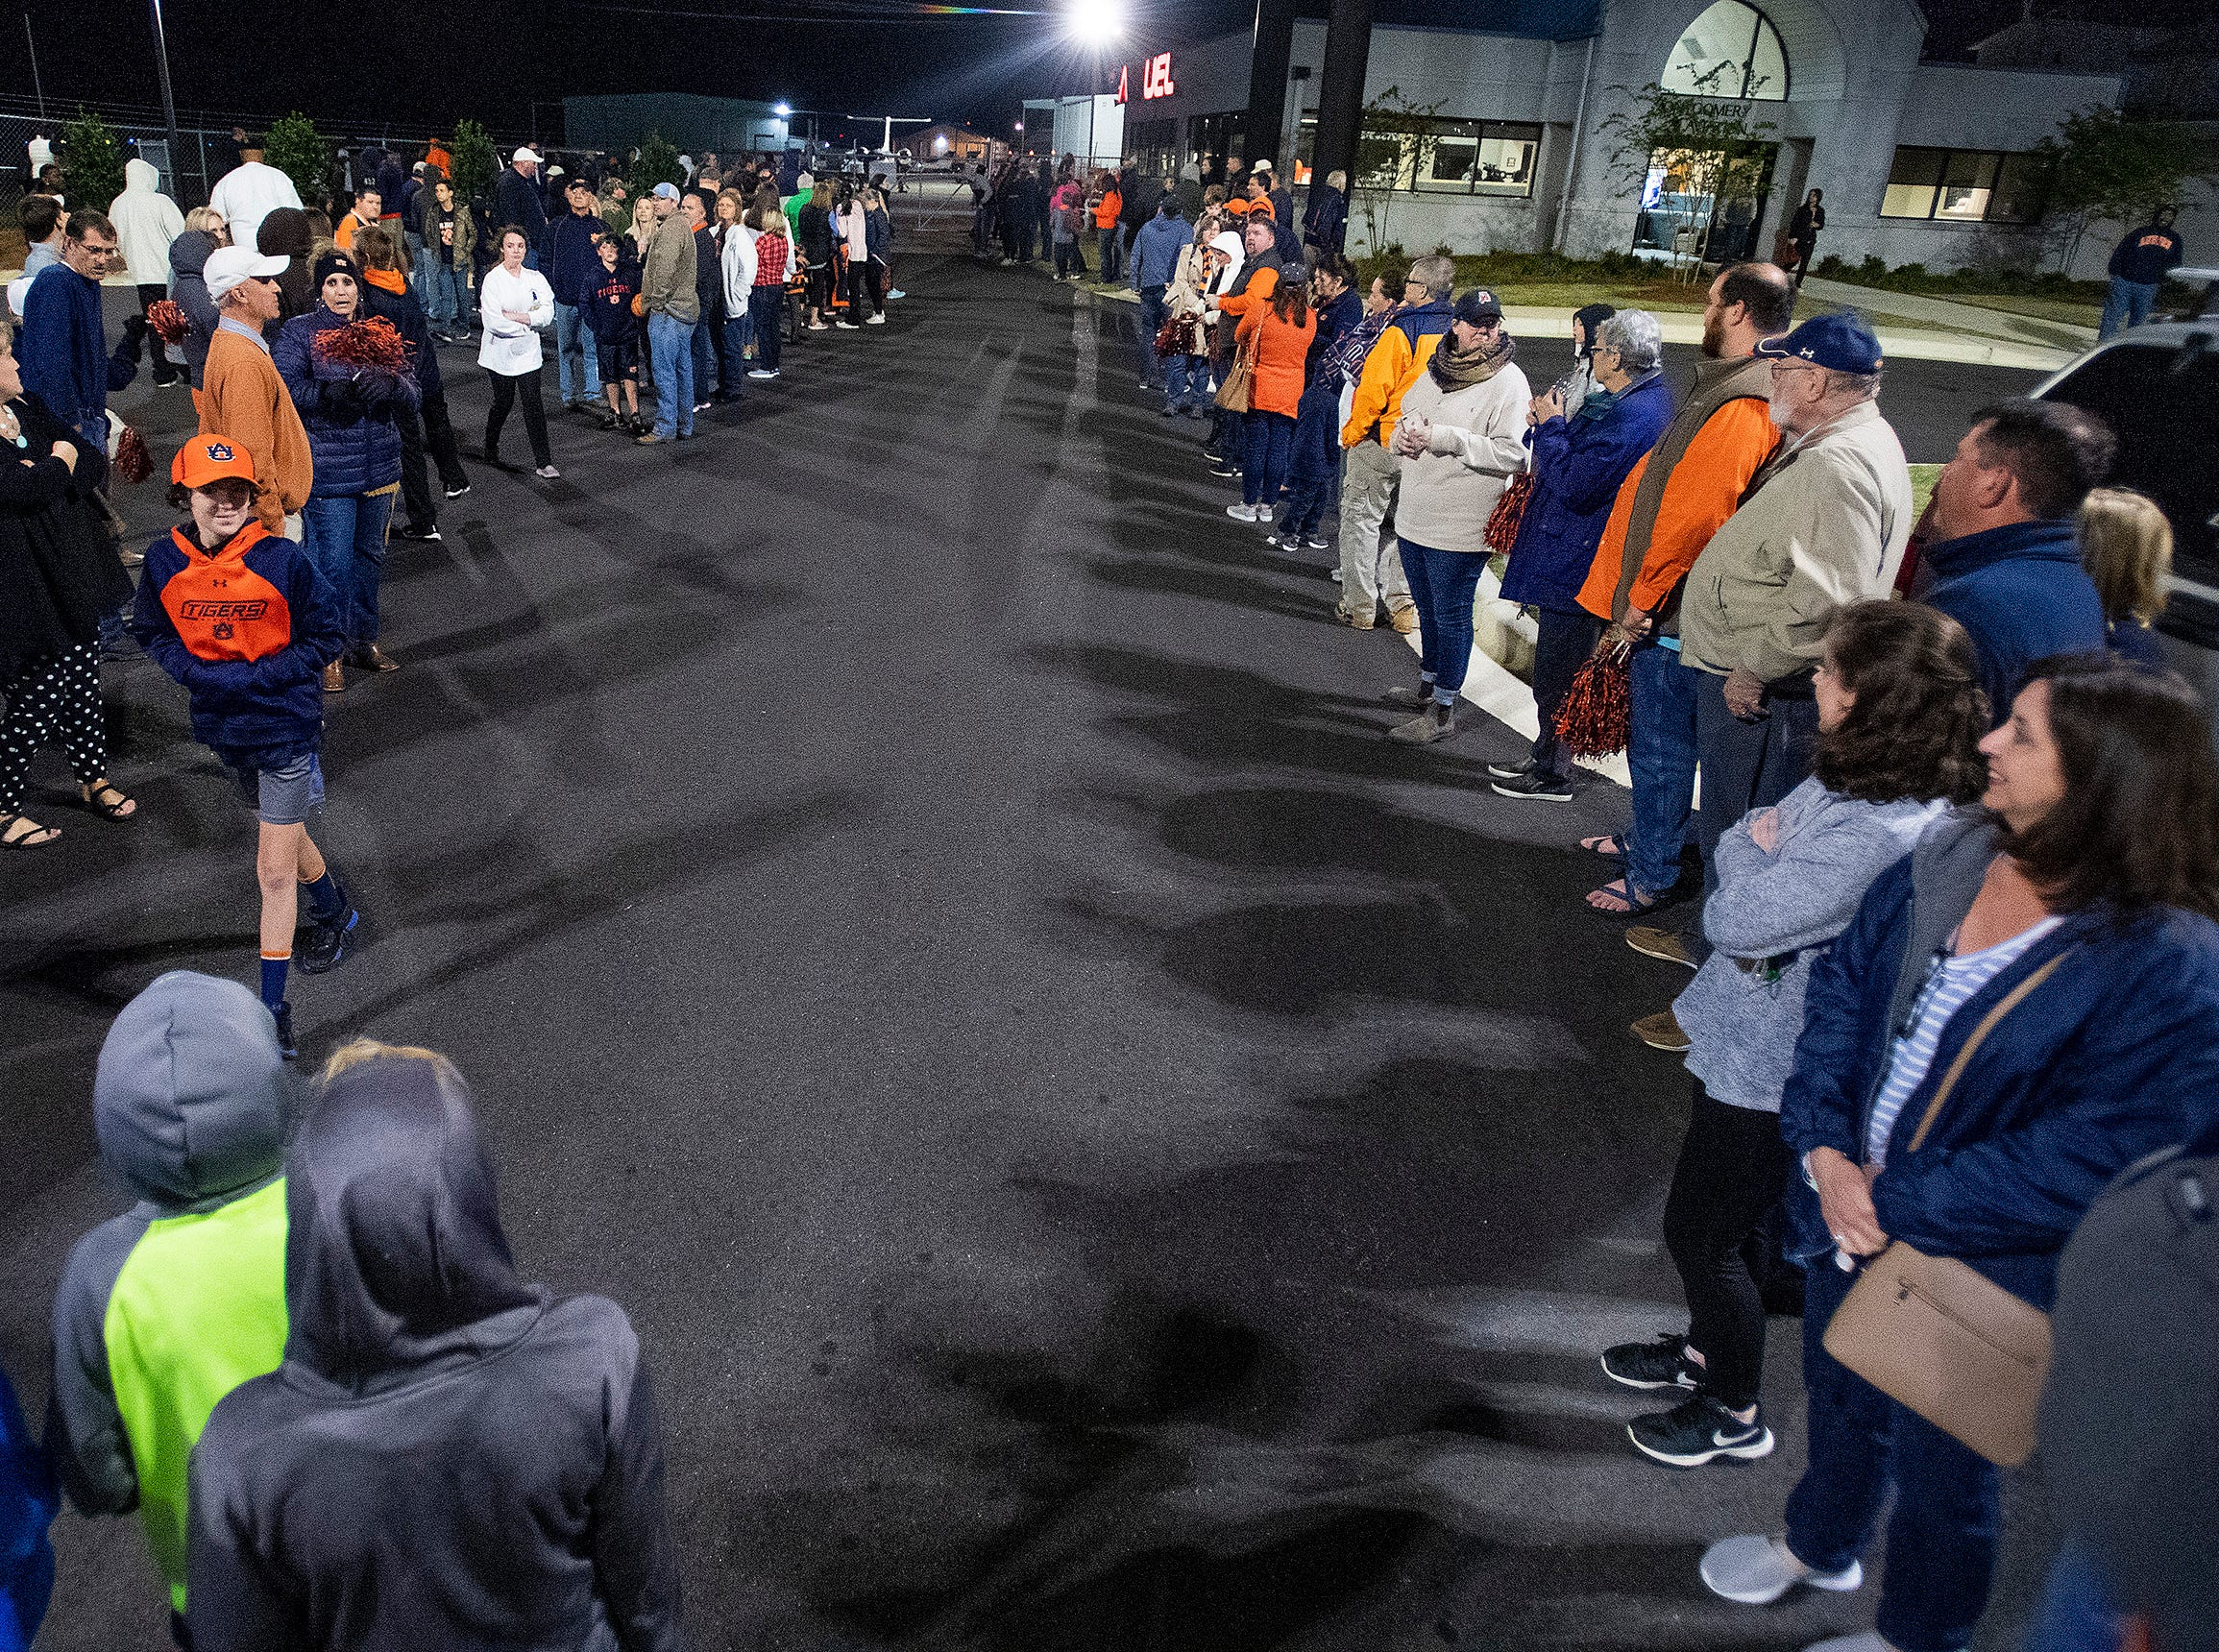 Fans line the way as the Auburn men's basketball team arrives at the Montgomery, Ala., airport on Sunday evening March 31, 2019 after defeating Kentucky in Kansas City to advance to the NCAA Basketball Final Four next weekend.